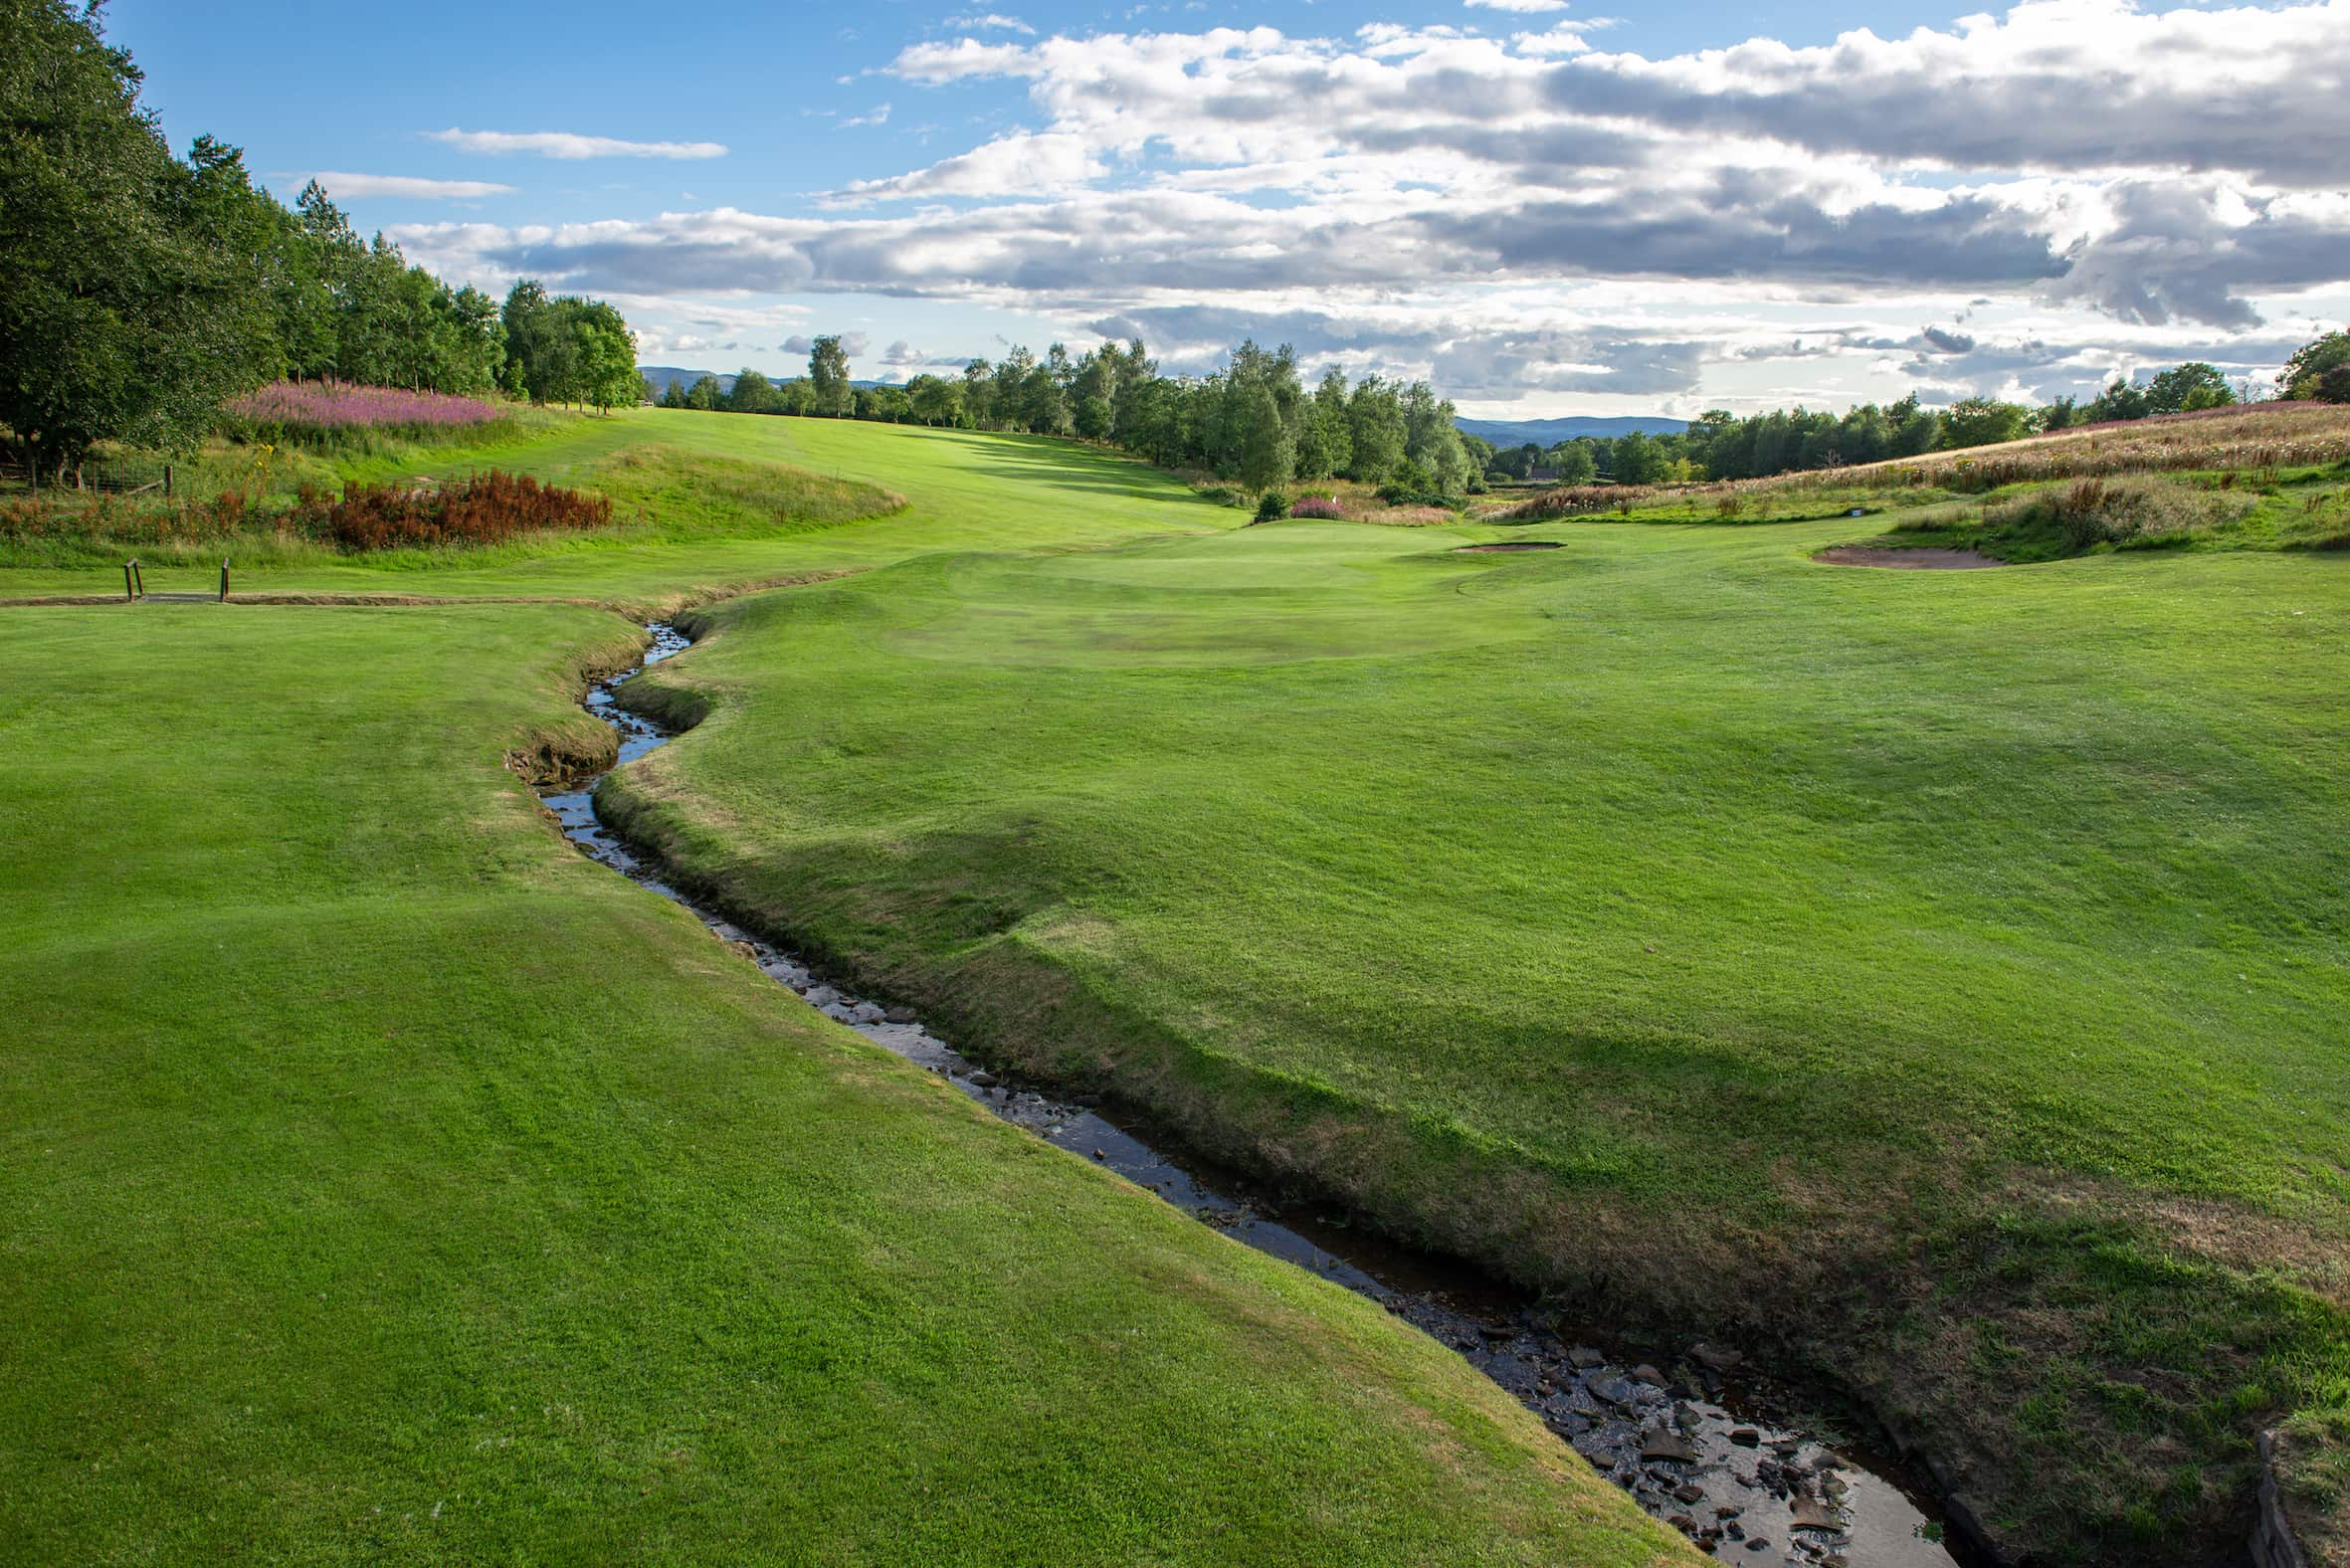 Balfron Golf Society by Contour Golf Ltd